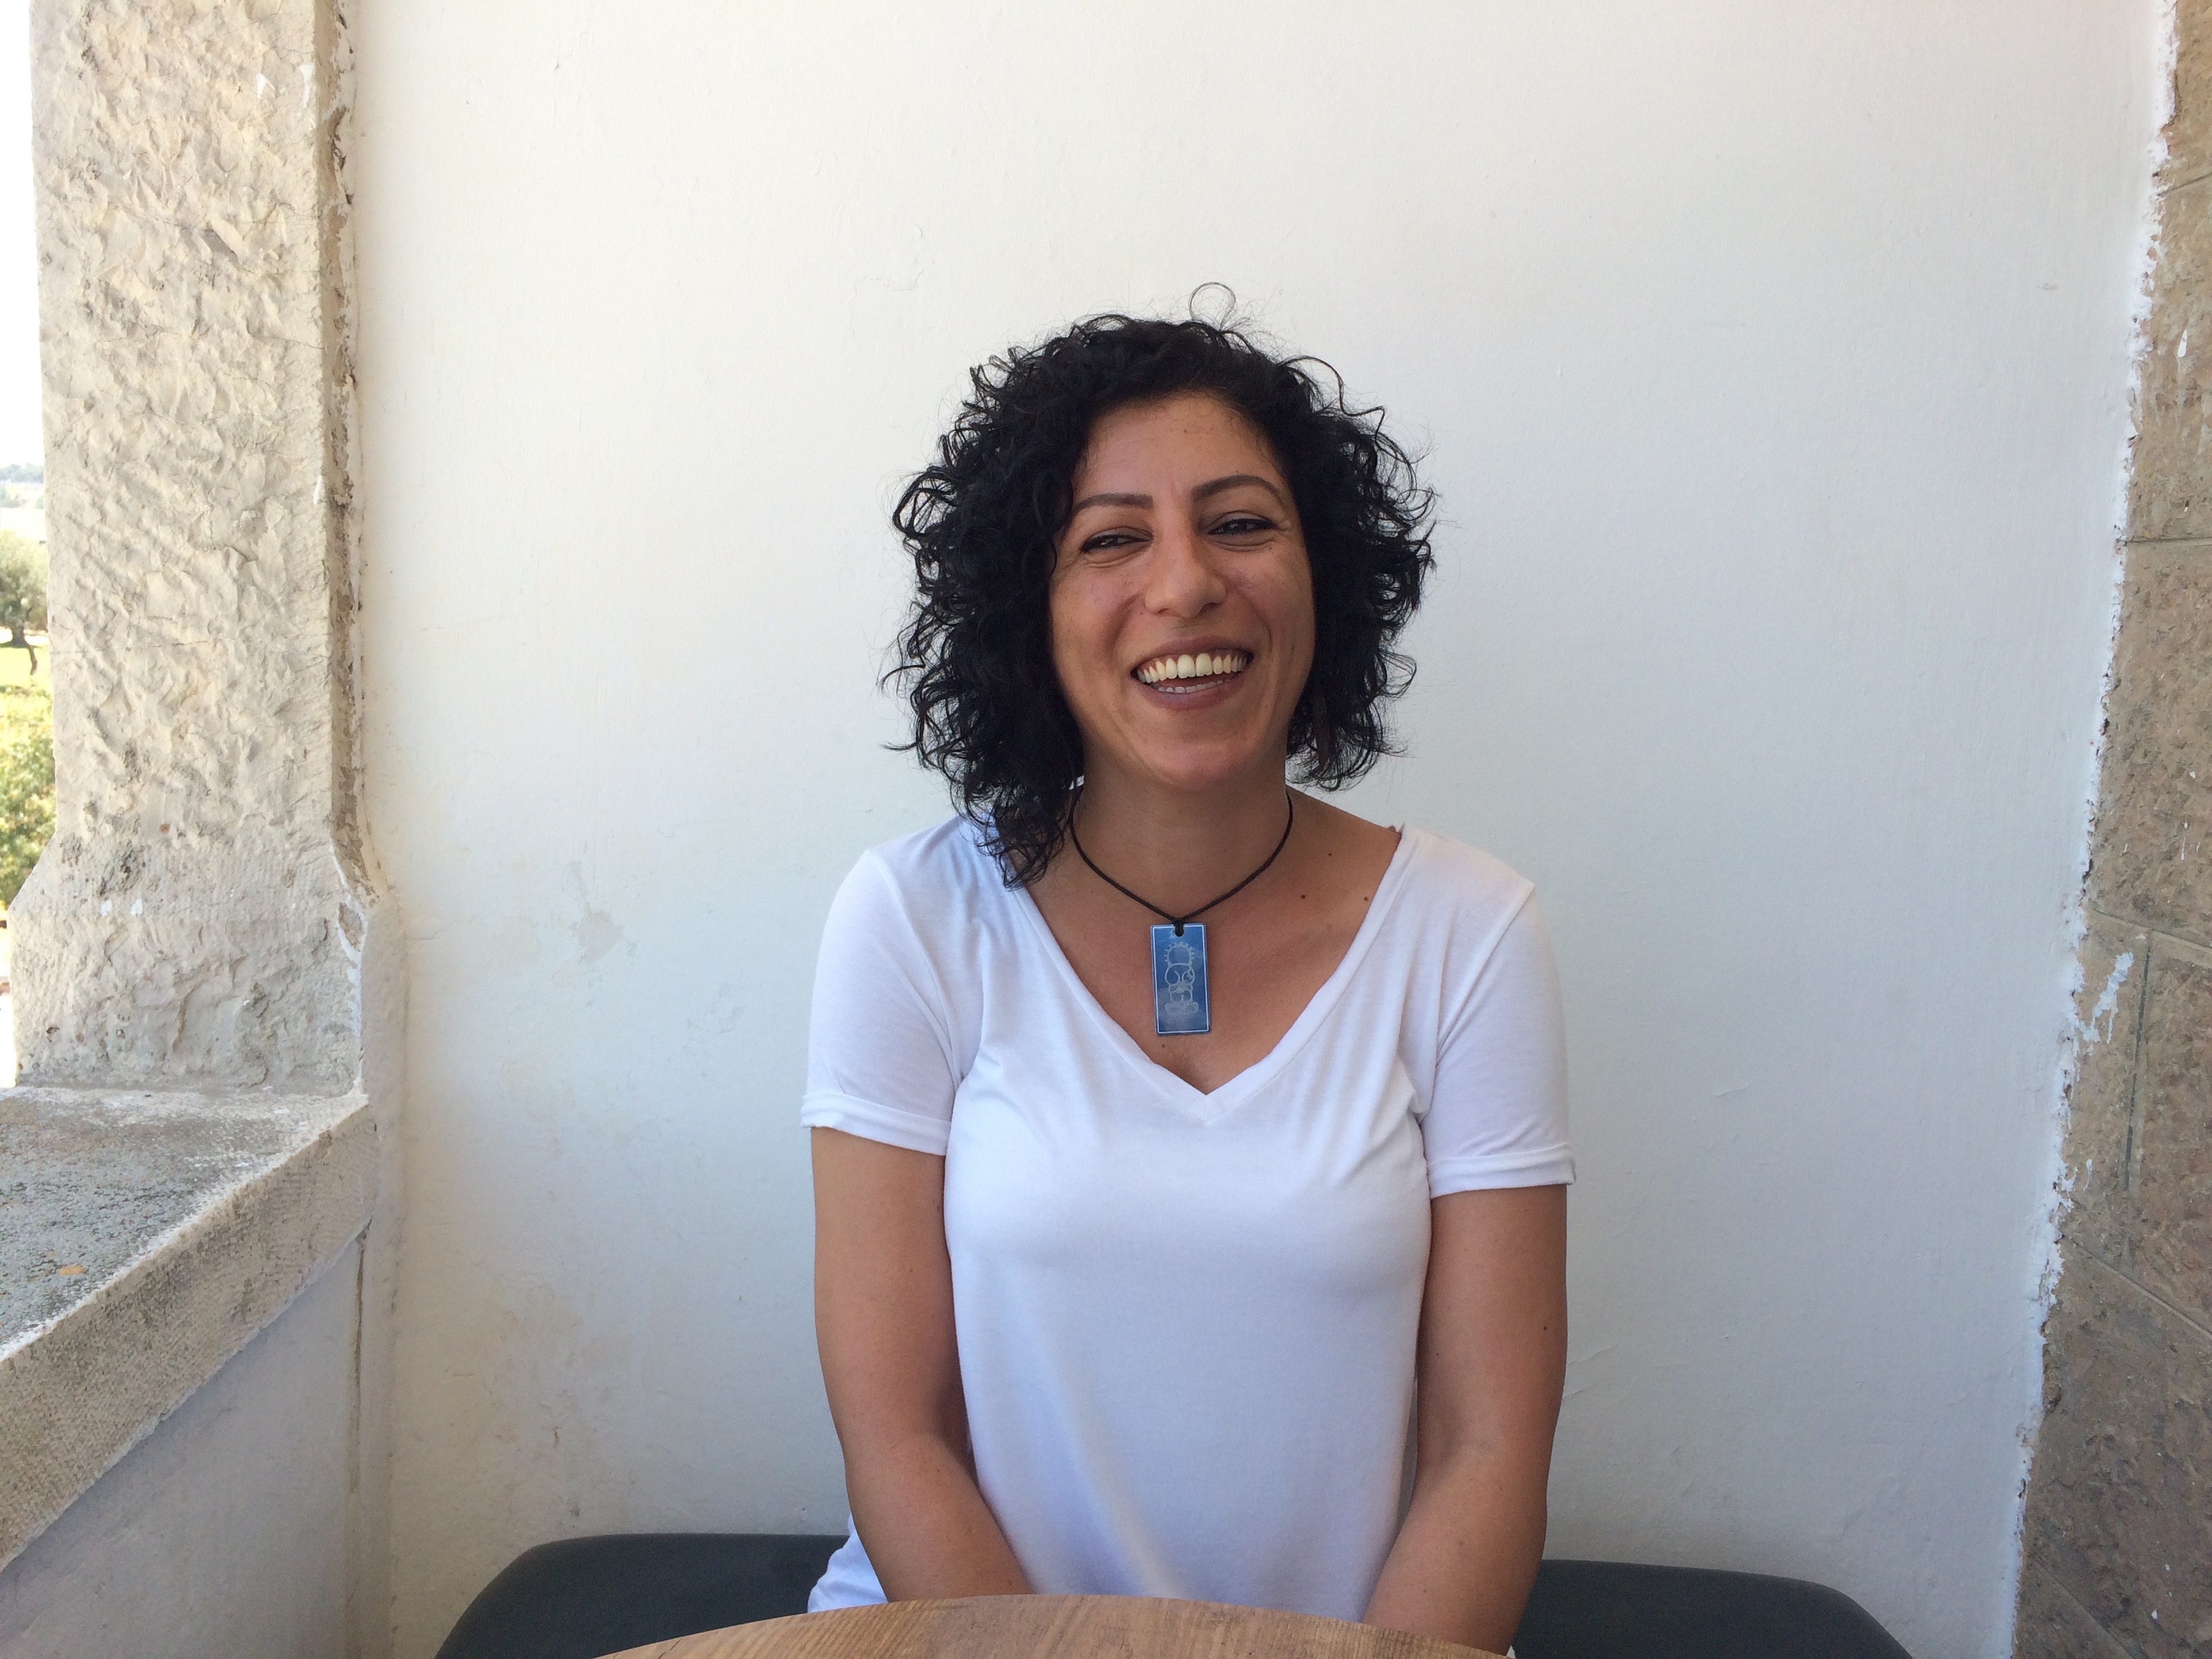 Fayrouz Sharqawi during the interview. Photo: Anas Kababo